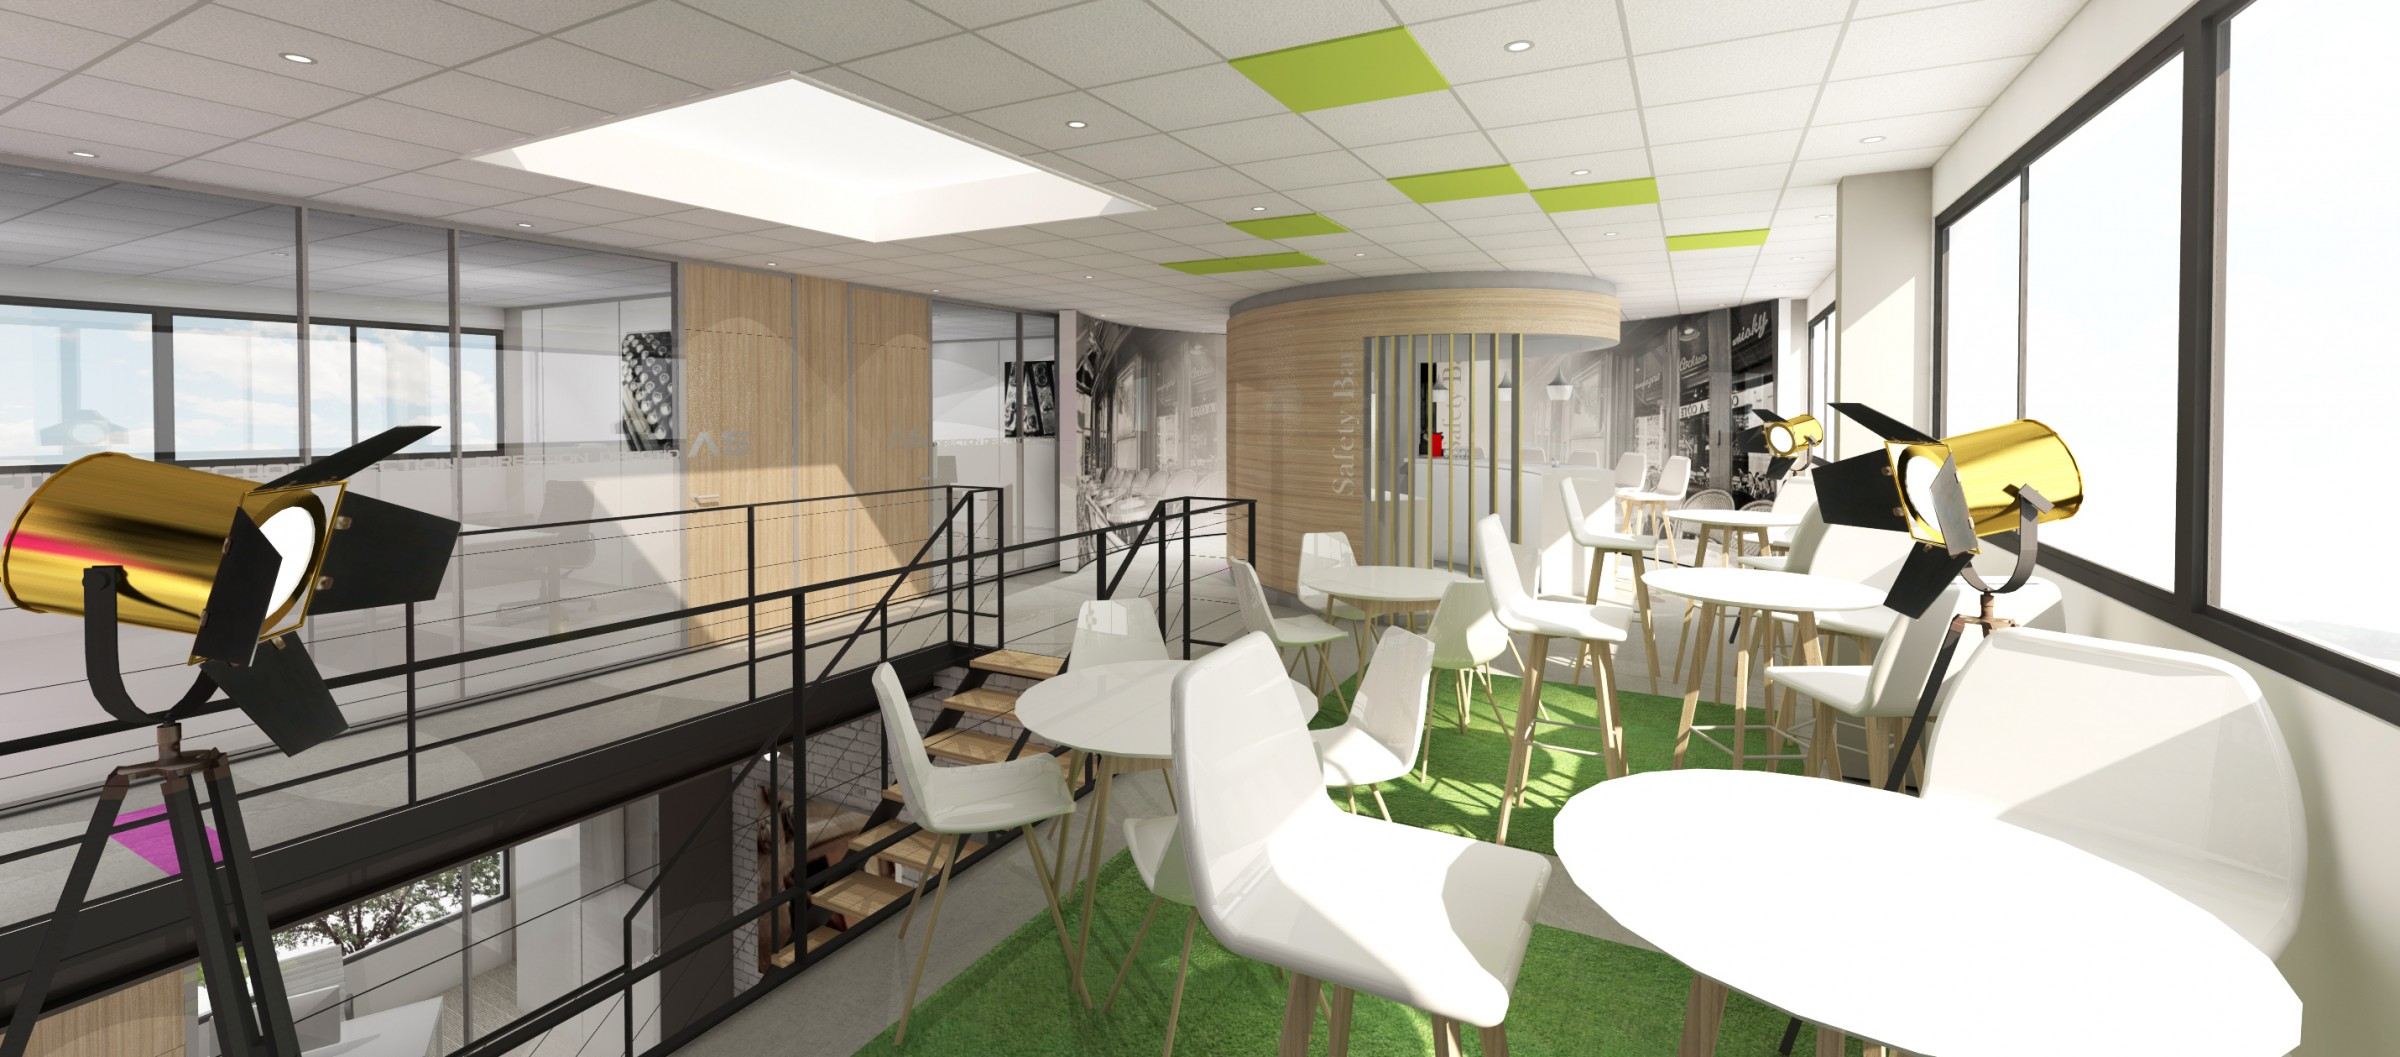 Formation-sketchup-architecture-interieur